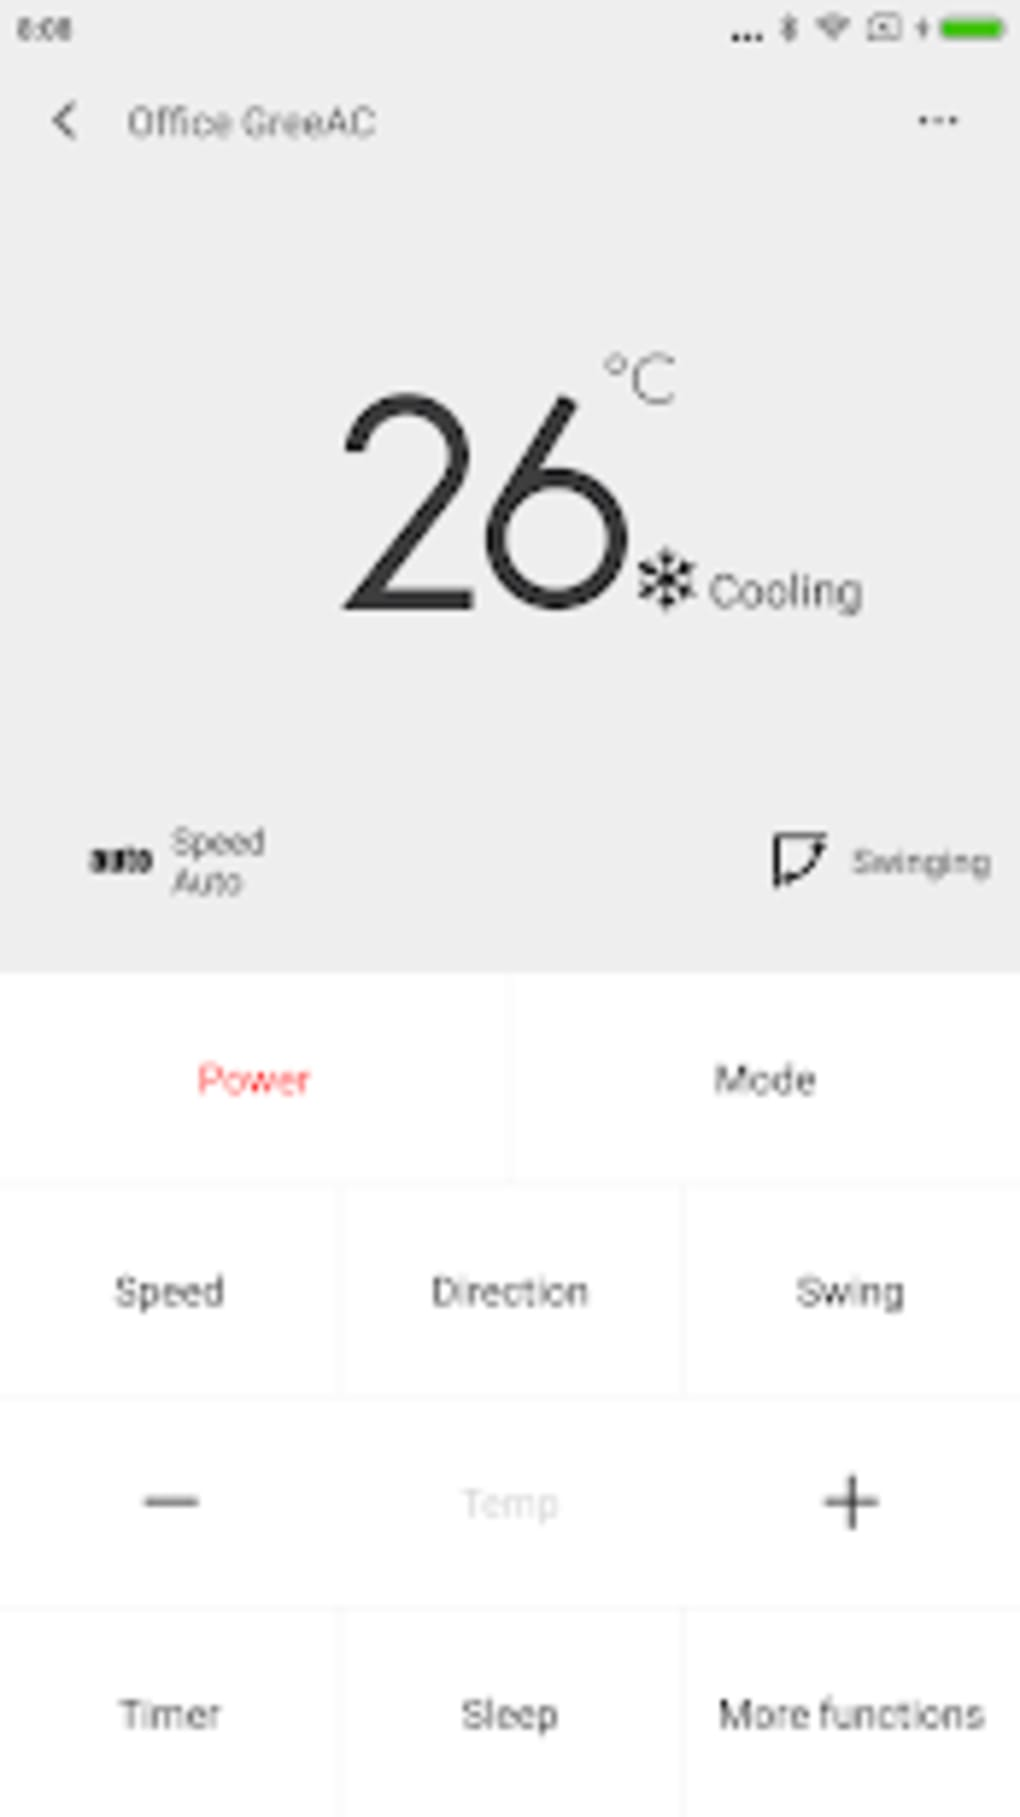 Mi Remote controller - for TV STB AC and more for Android - Download